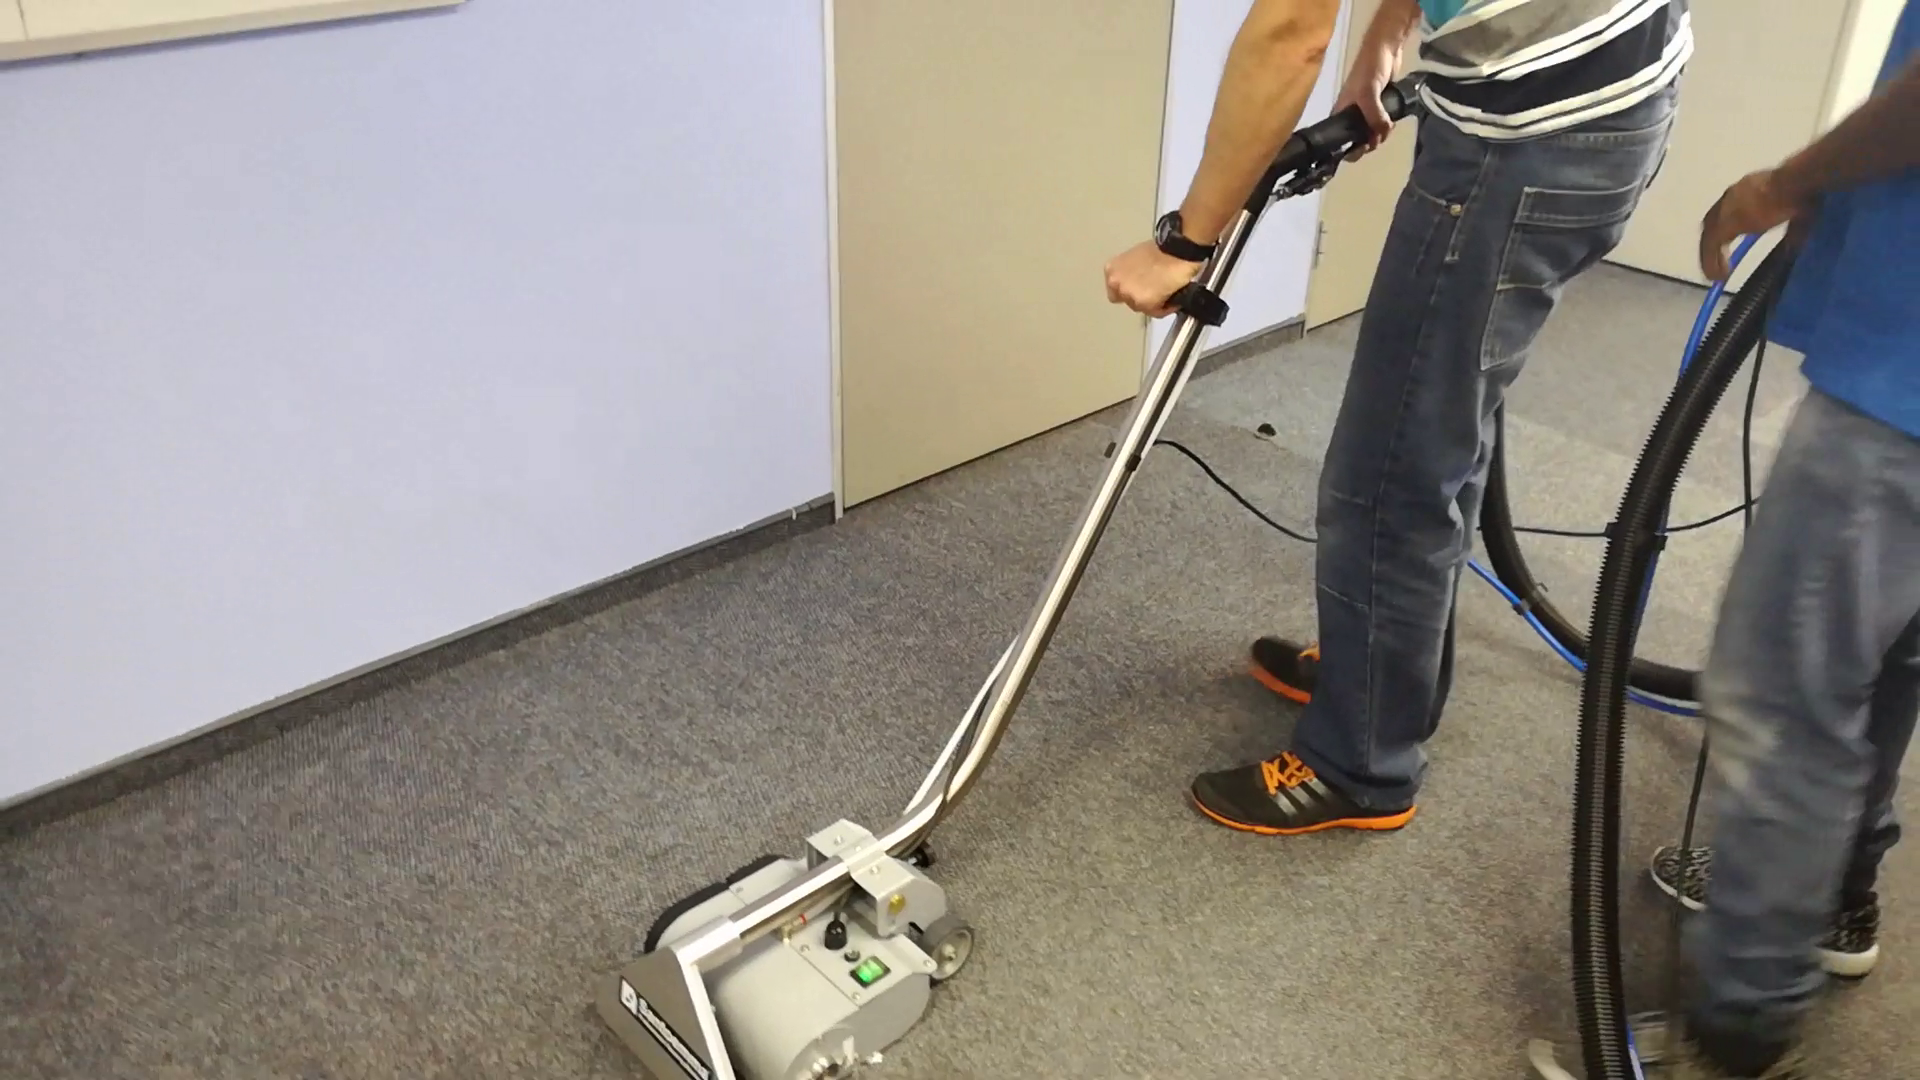 Power brush carpet cleaning